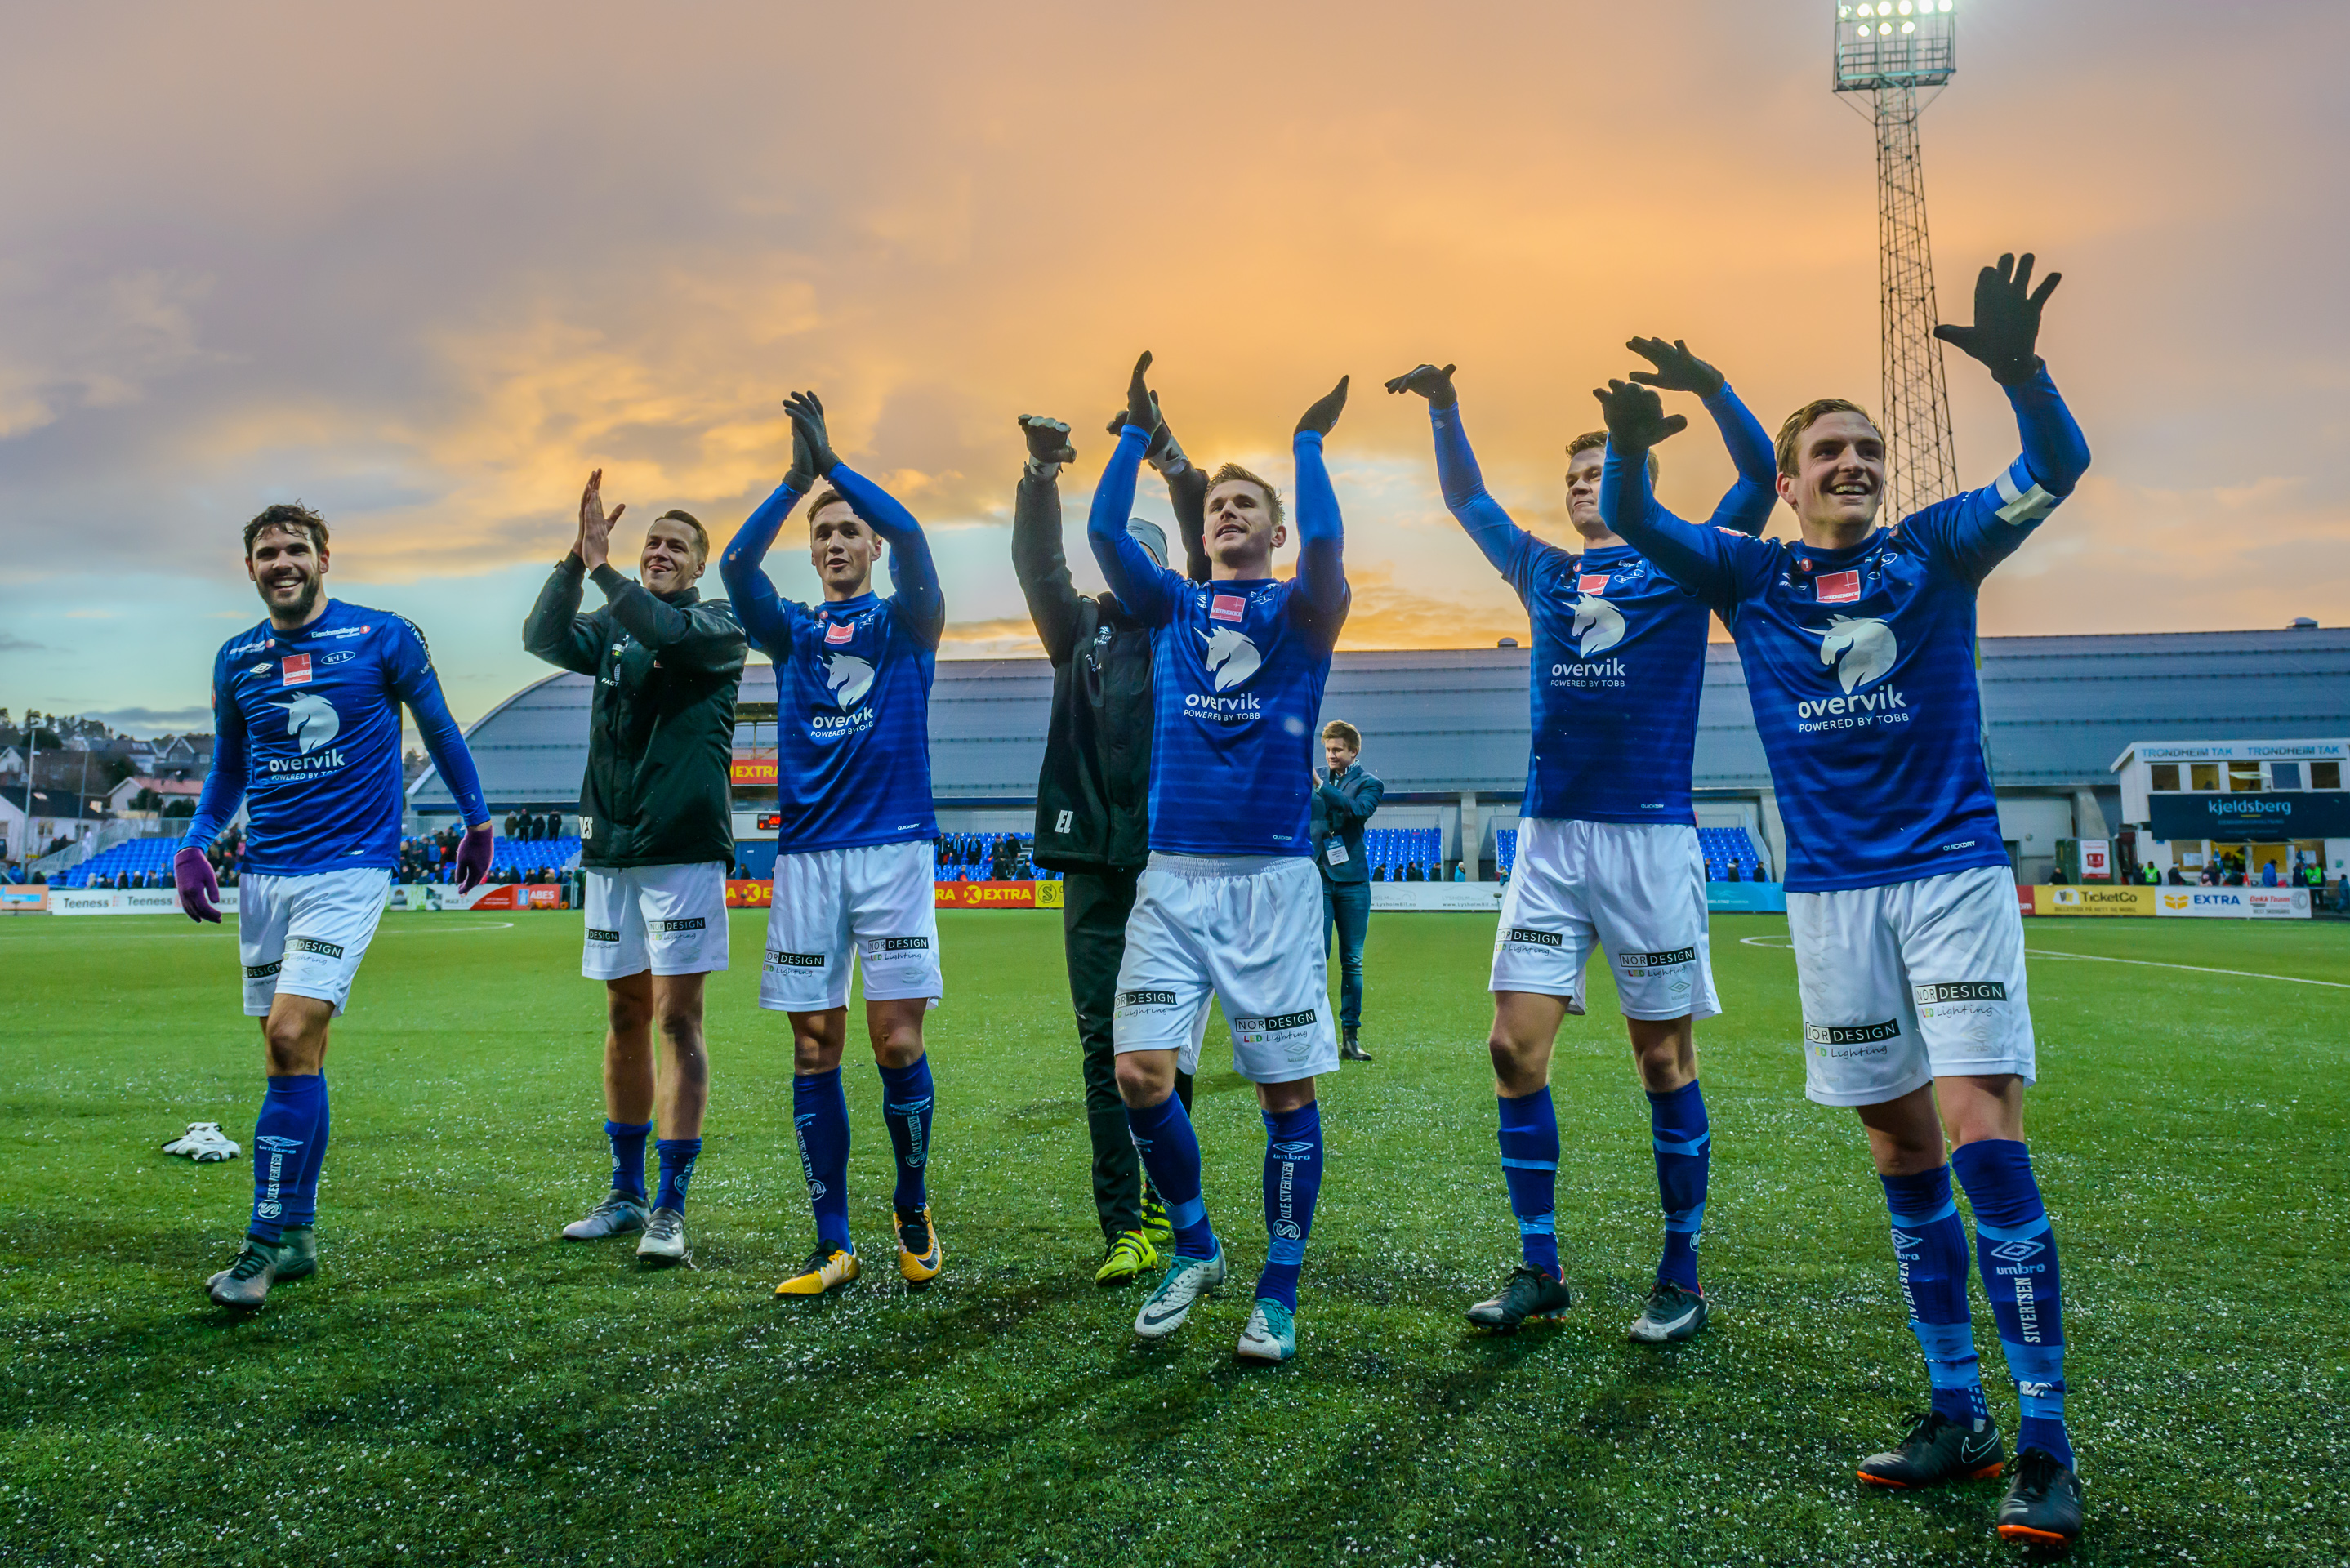 Ranheim beat Stabæk at home in april 2018. The result was 4-1